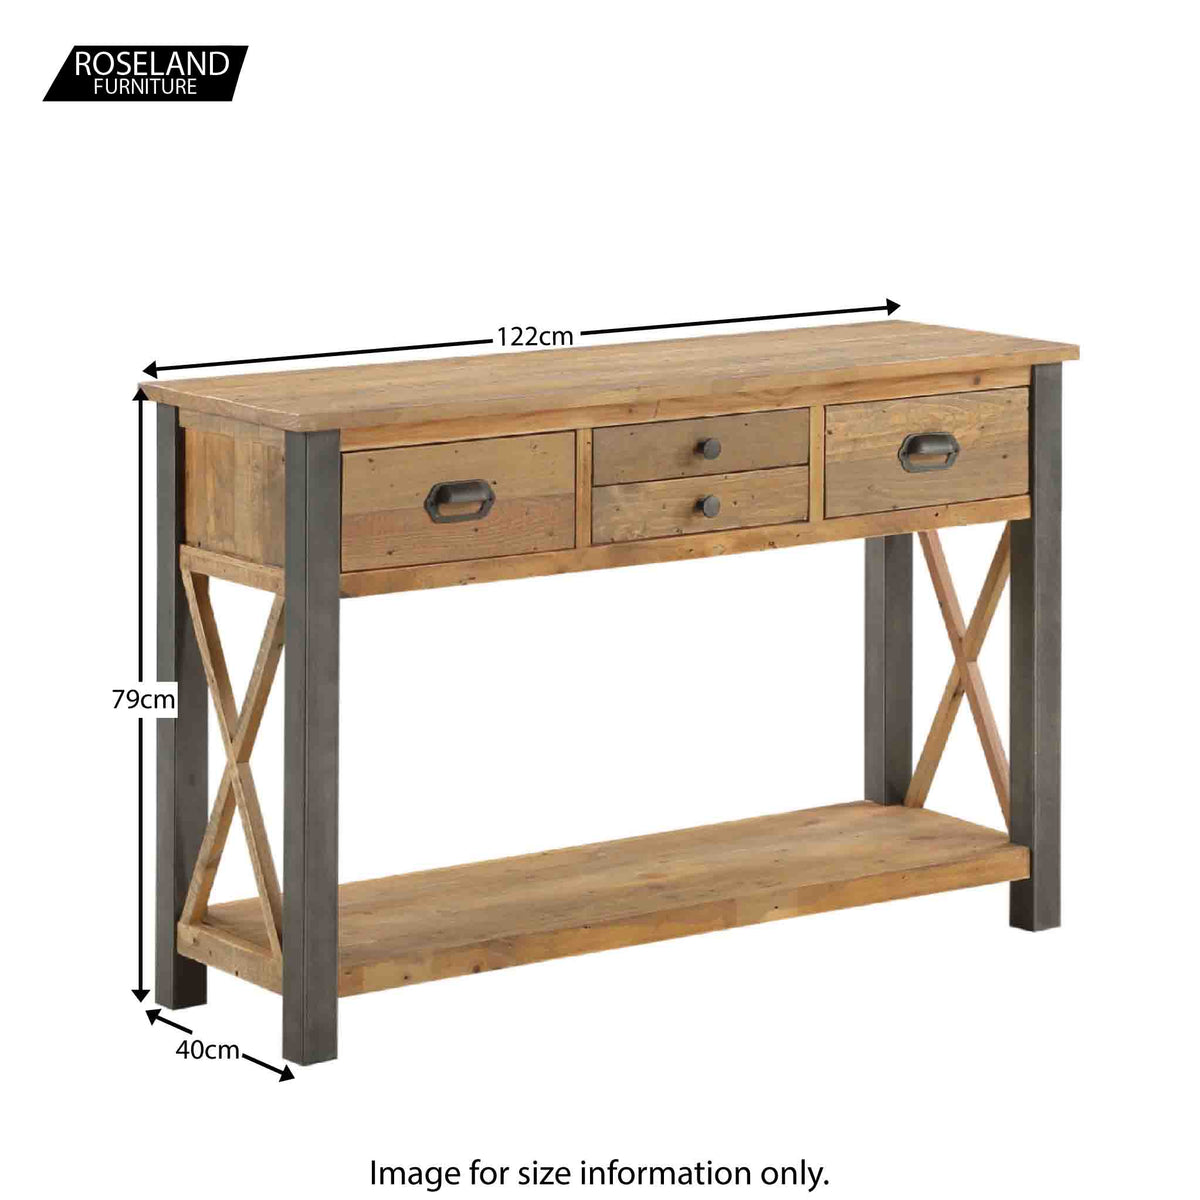 Dimensions for Urban Elegance Reclaimed Wood Large Console Table 122 x 79 x 40 cm